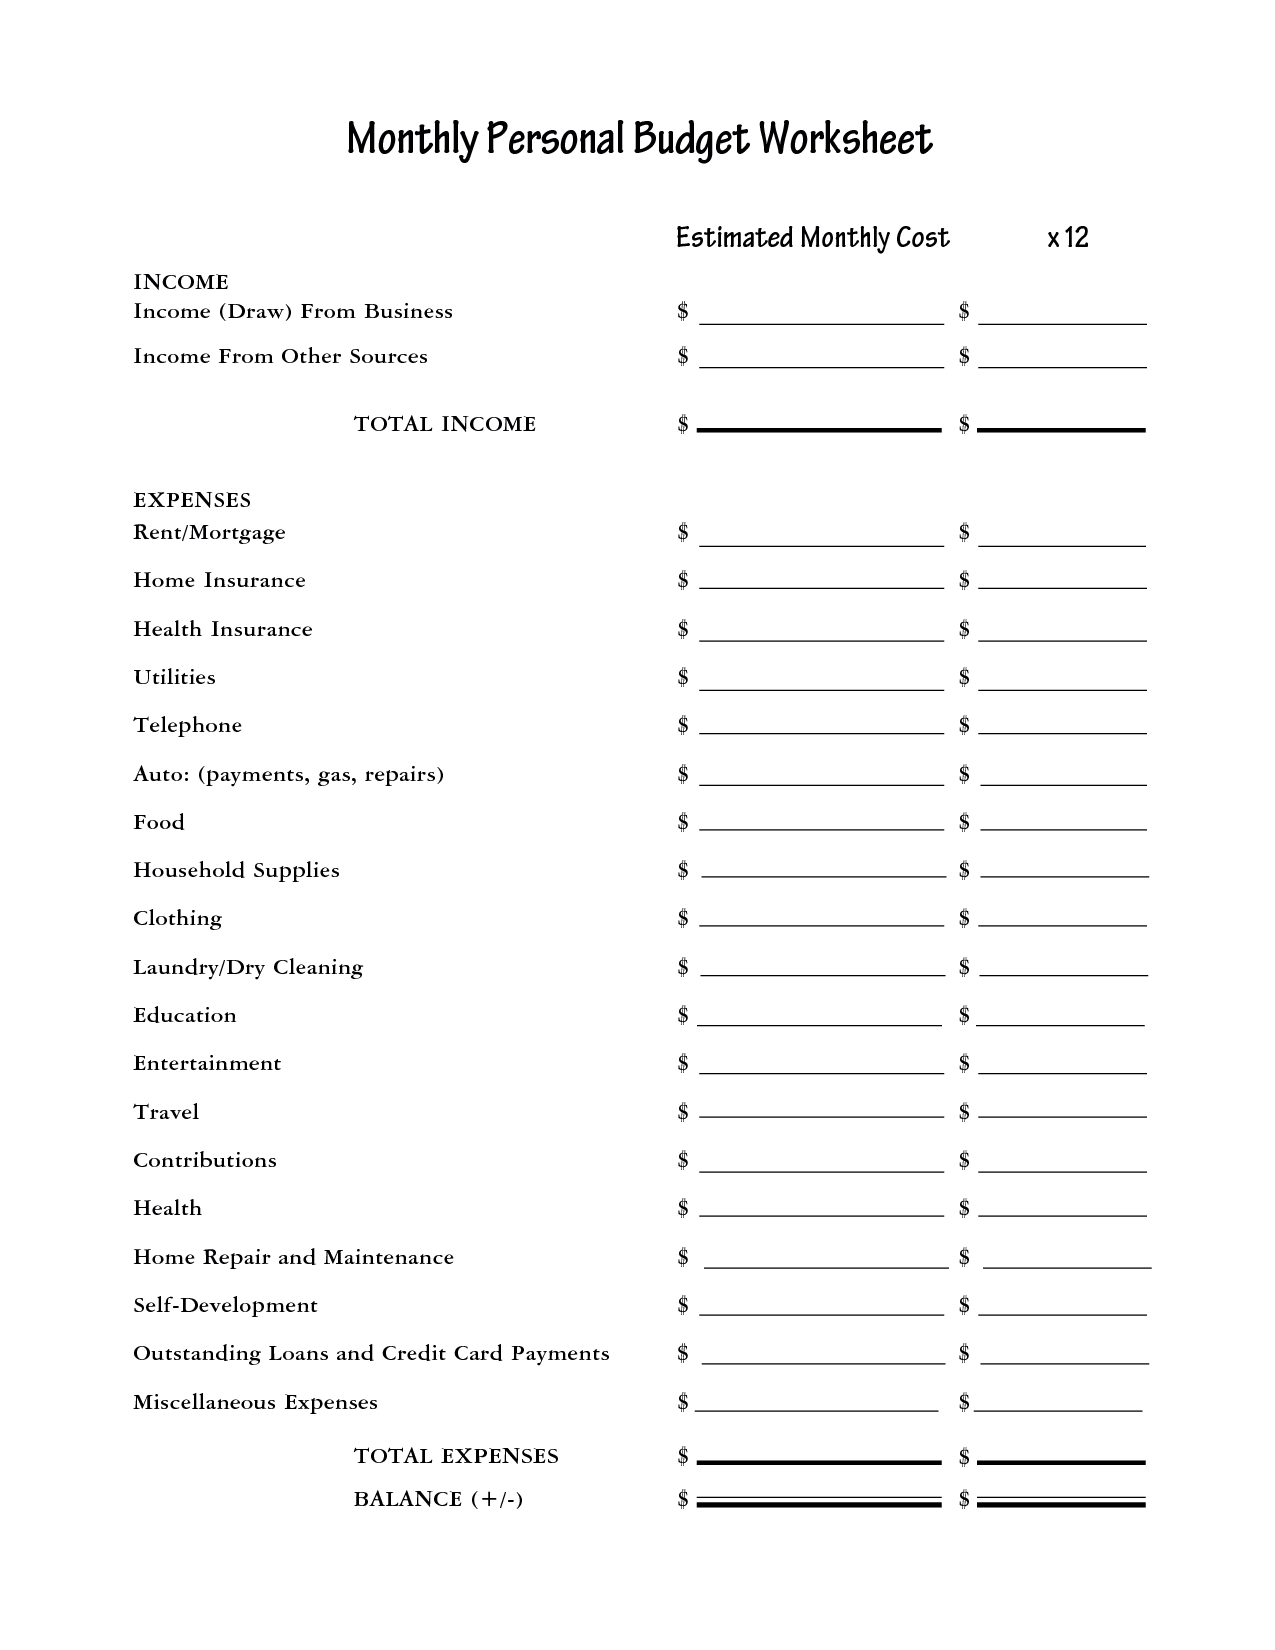 free printable worksheet budget spreadsheet monthly personal budget worksheet estimated monthly cost income income - Personal Budget Worksheet